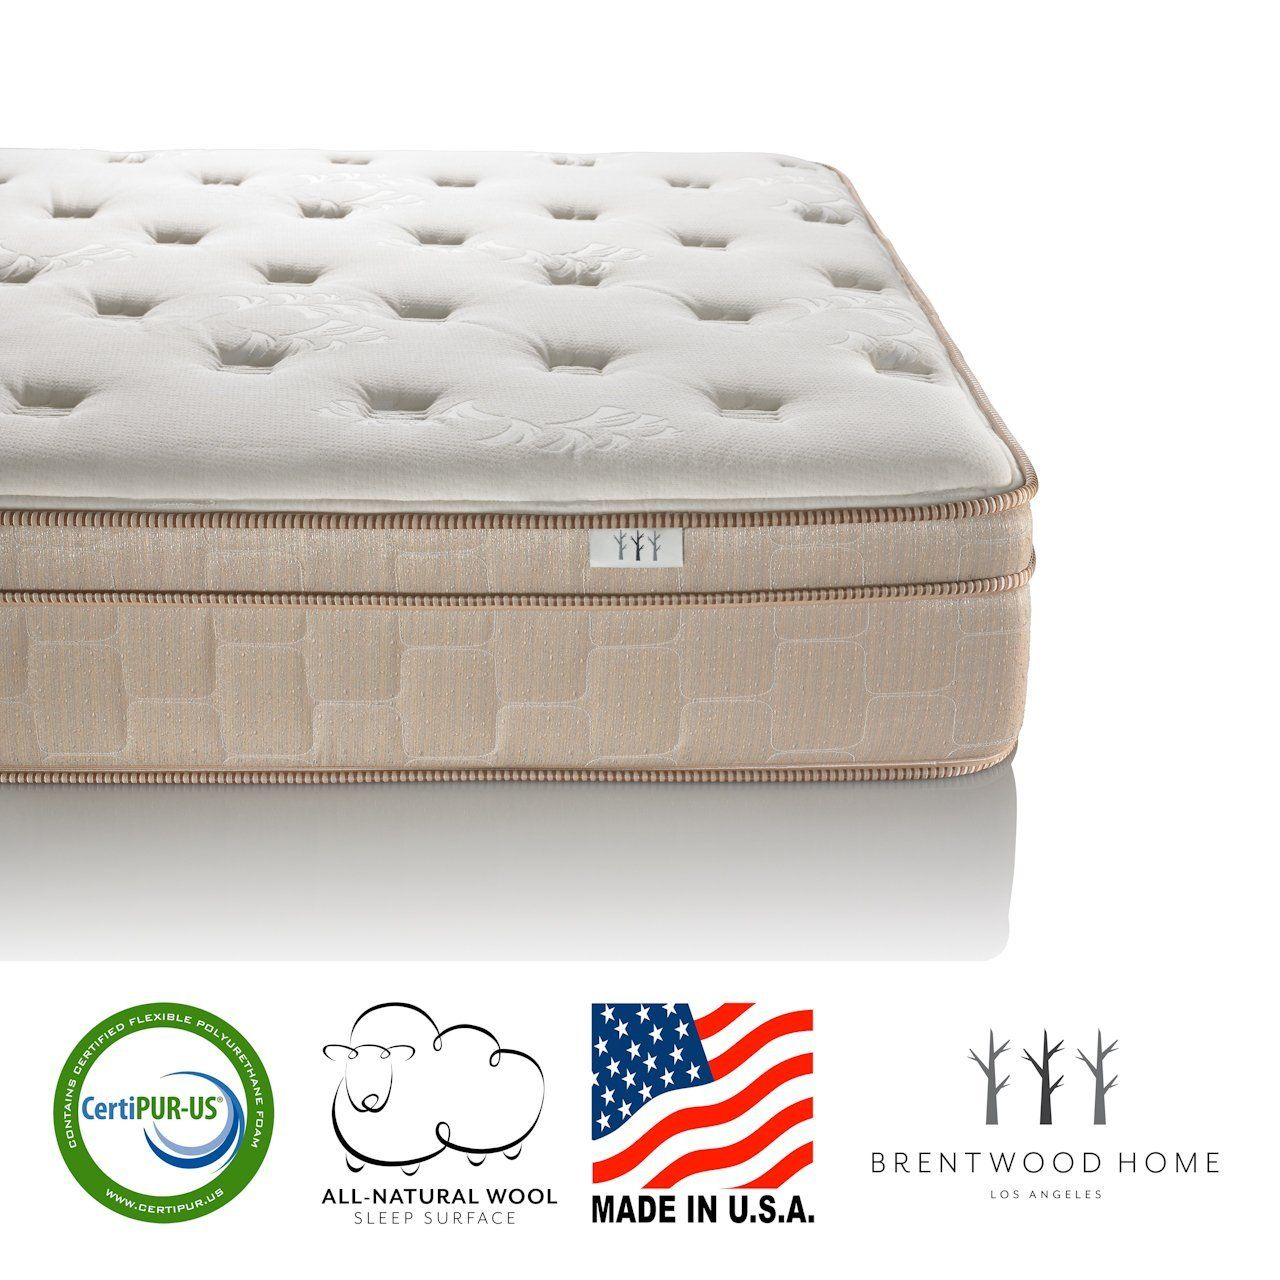 mattress toxic choose nursery how to home for your review non brentwood girl a worth